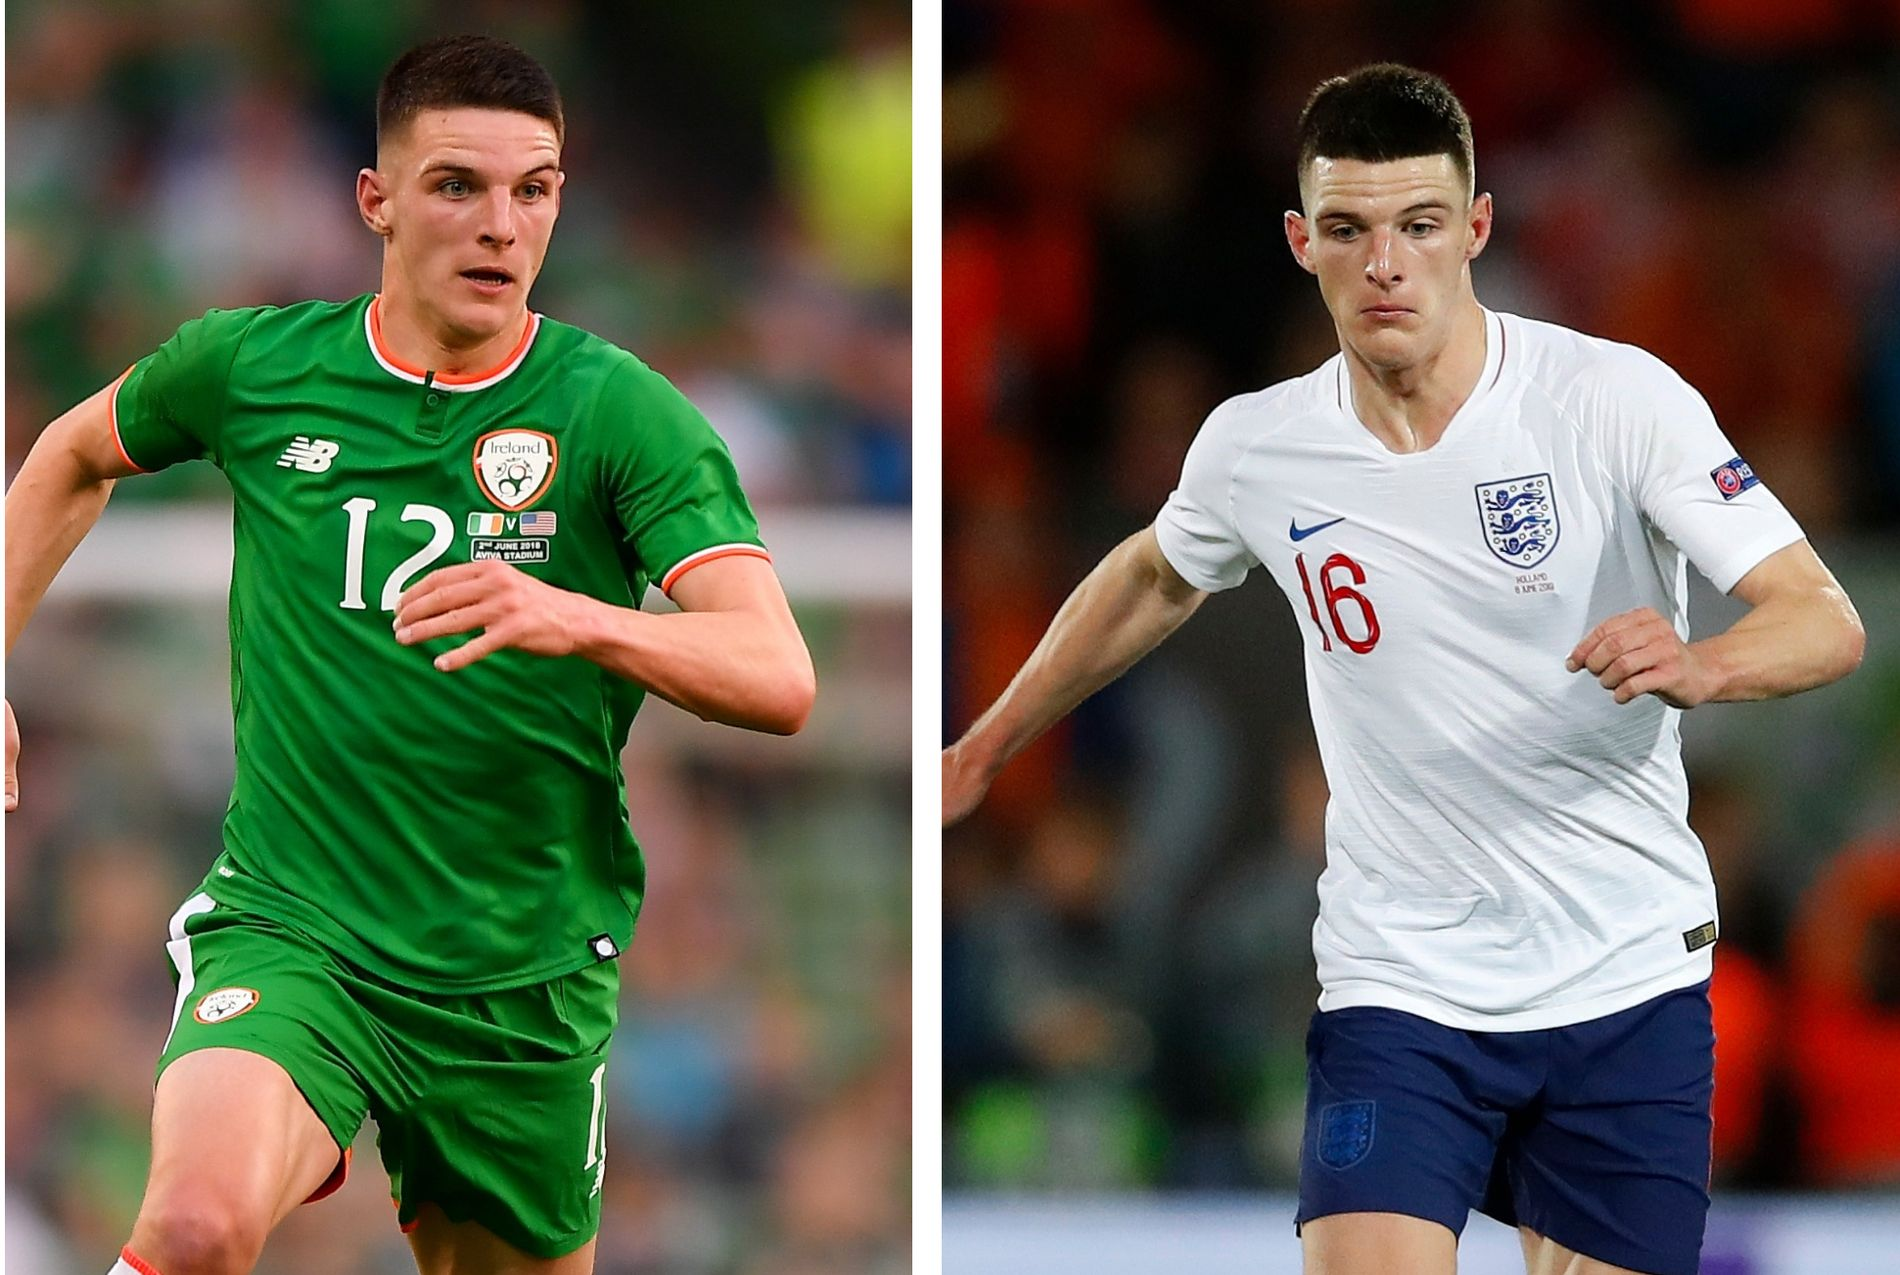 BYTTET: Declan Rice for henholdsvis Irland (t.v.) og for England (t.h.).